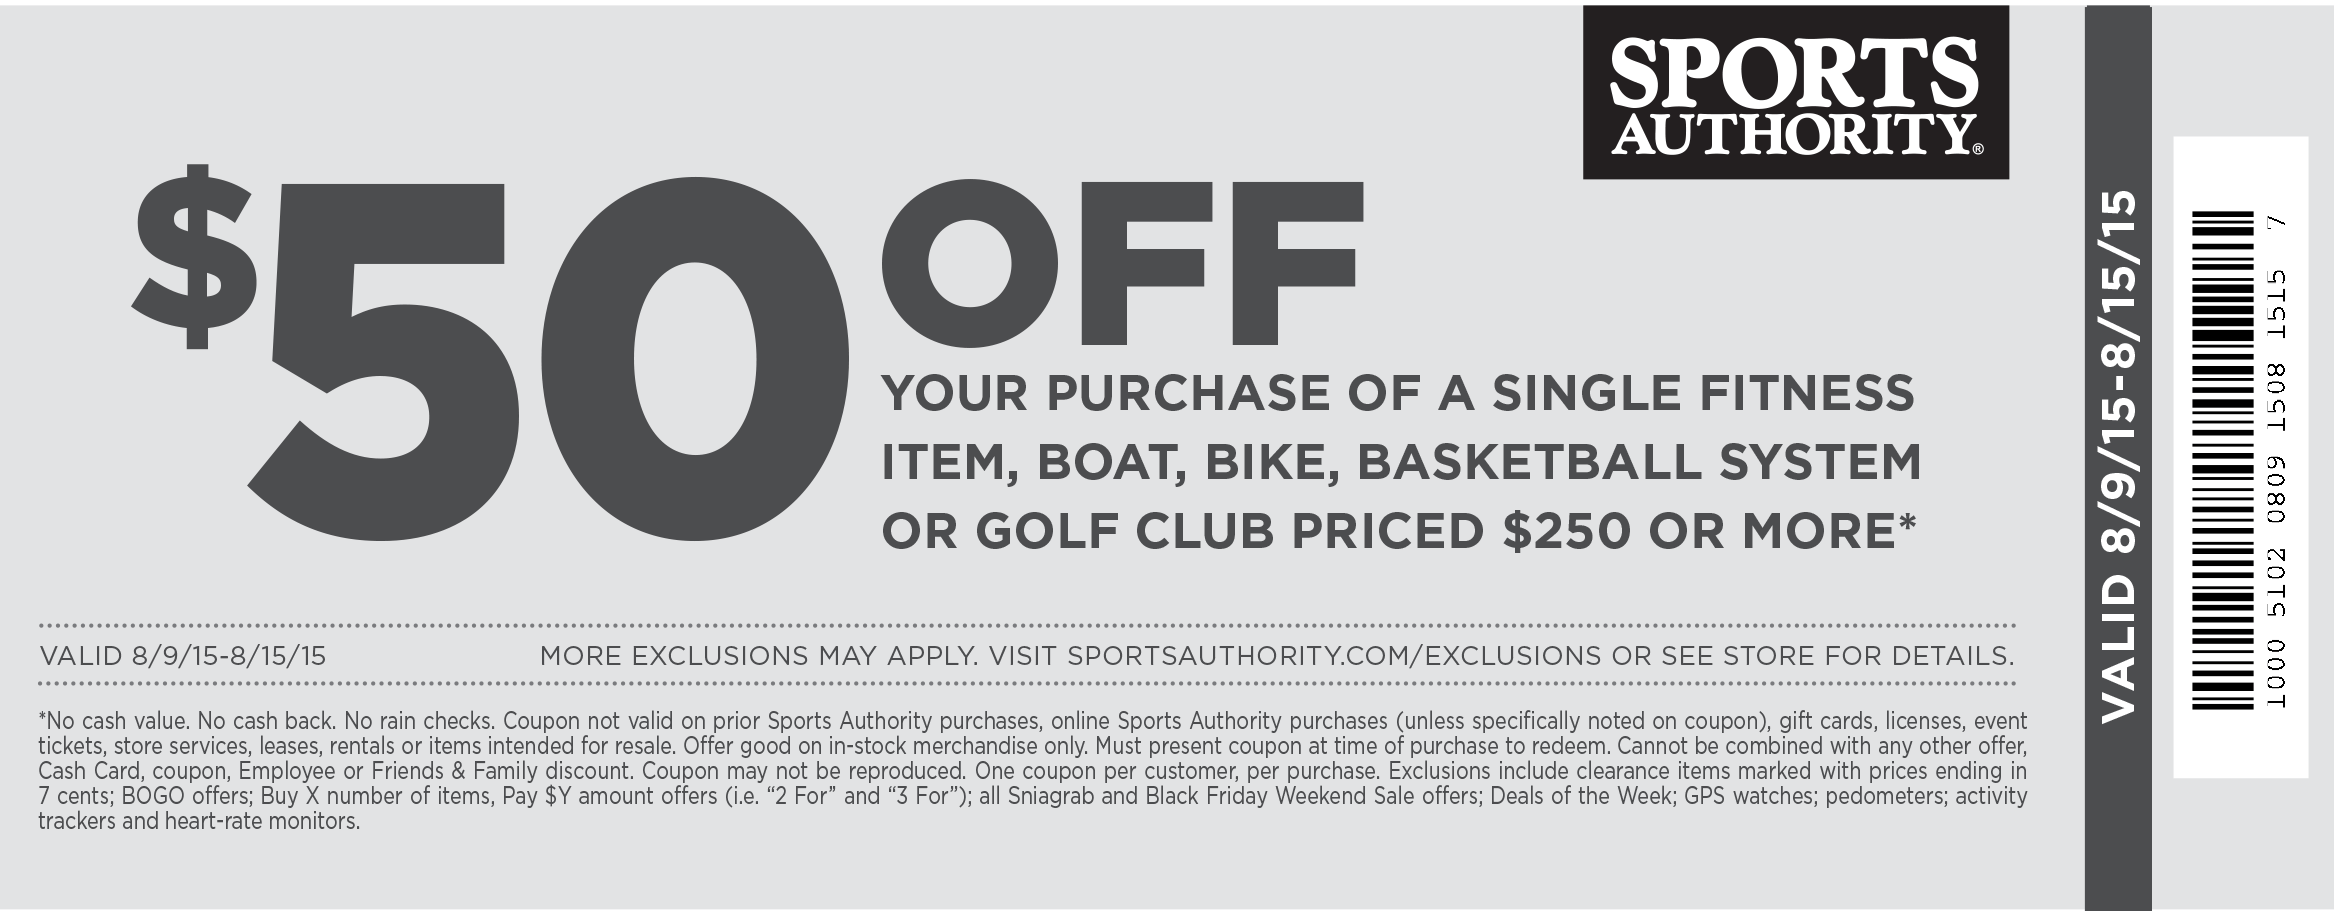 Sports Authority Coupon September 2018 $50 off $250 on a big ticket item at Sports Authority